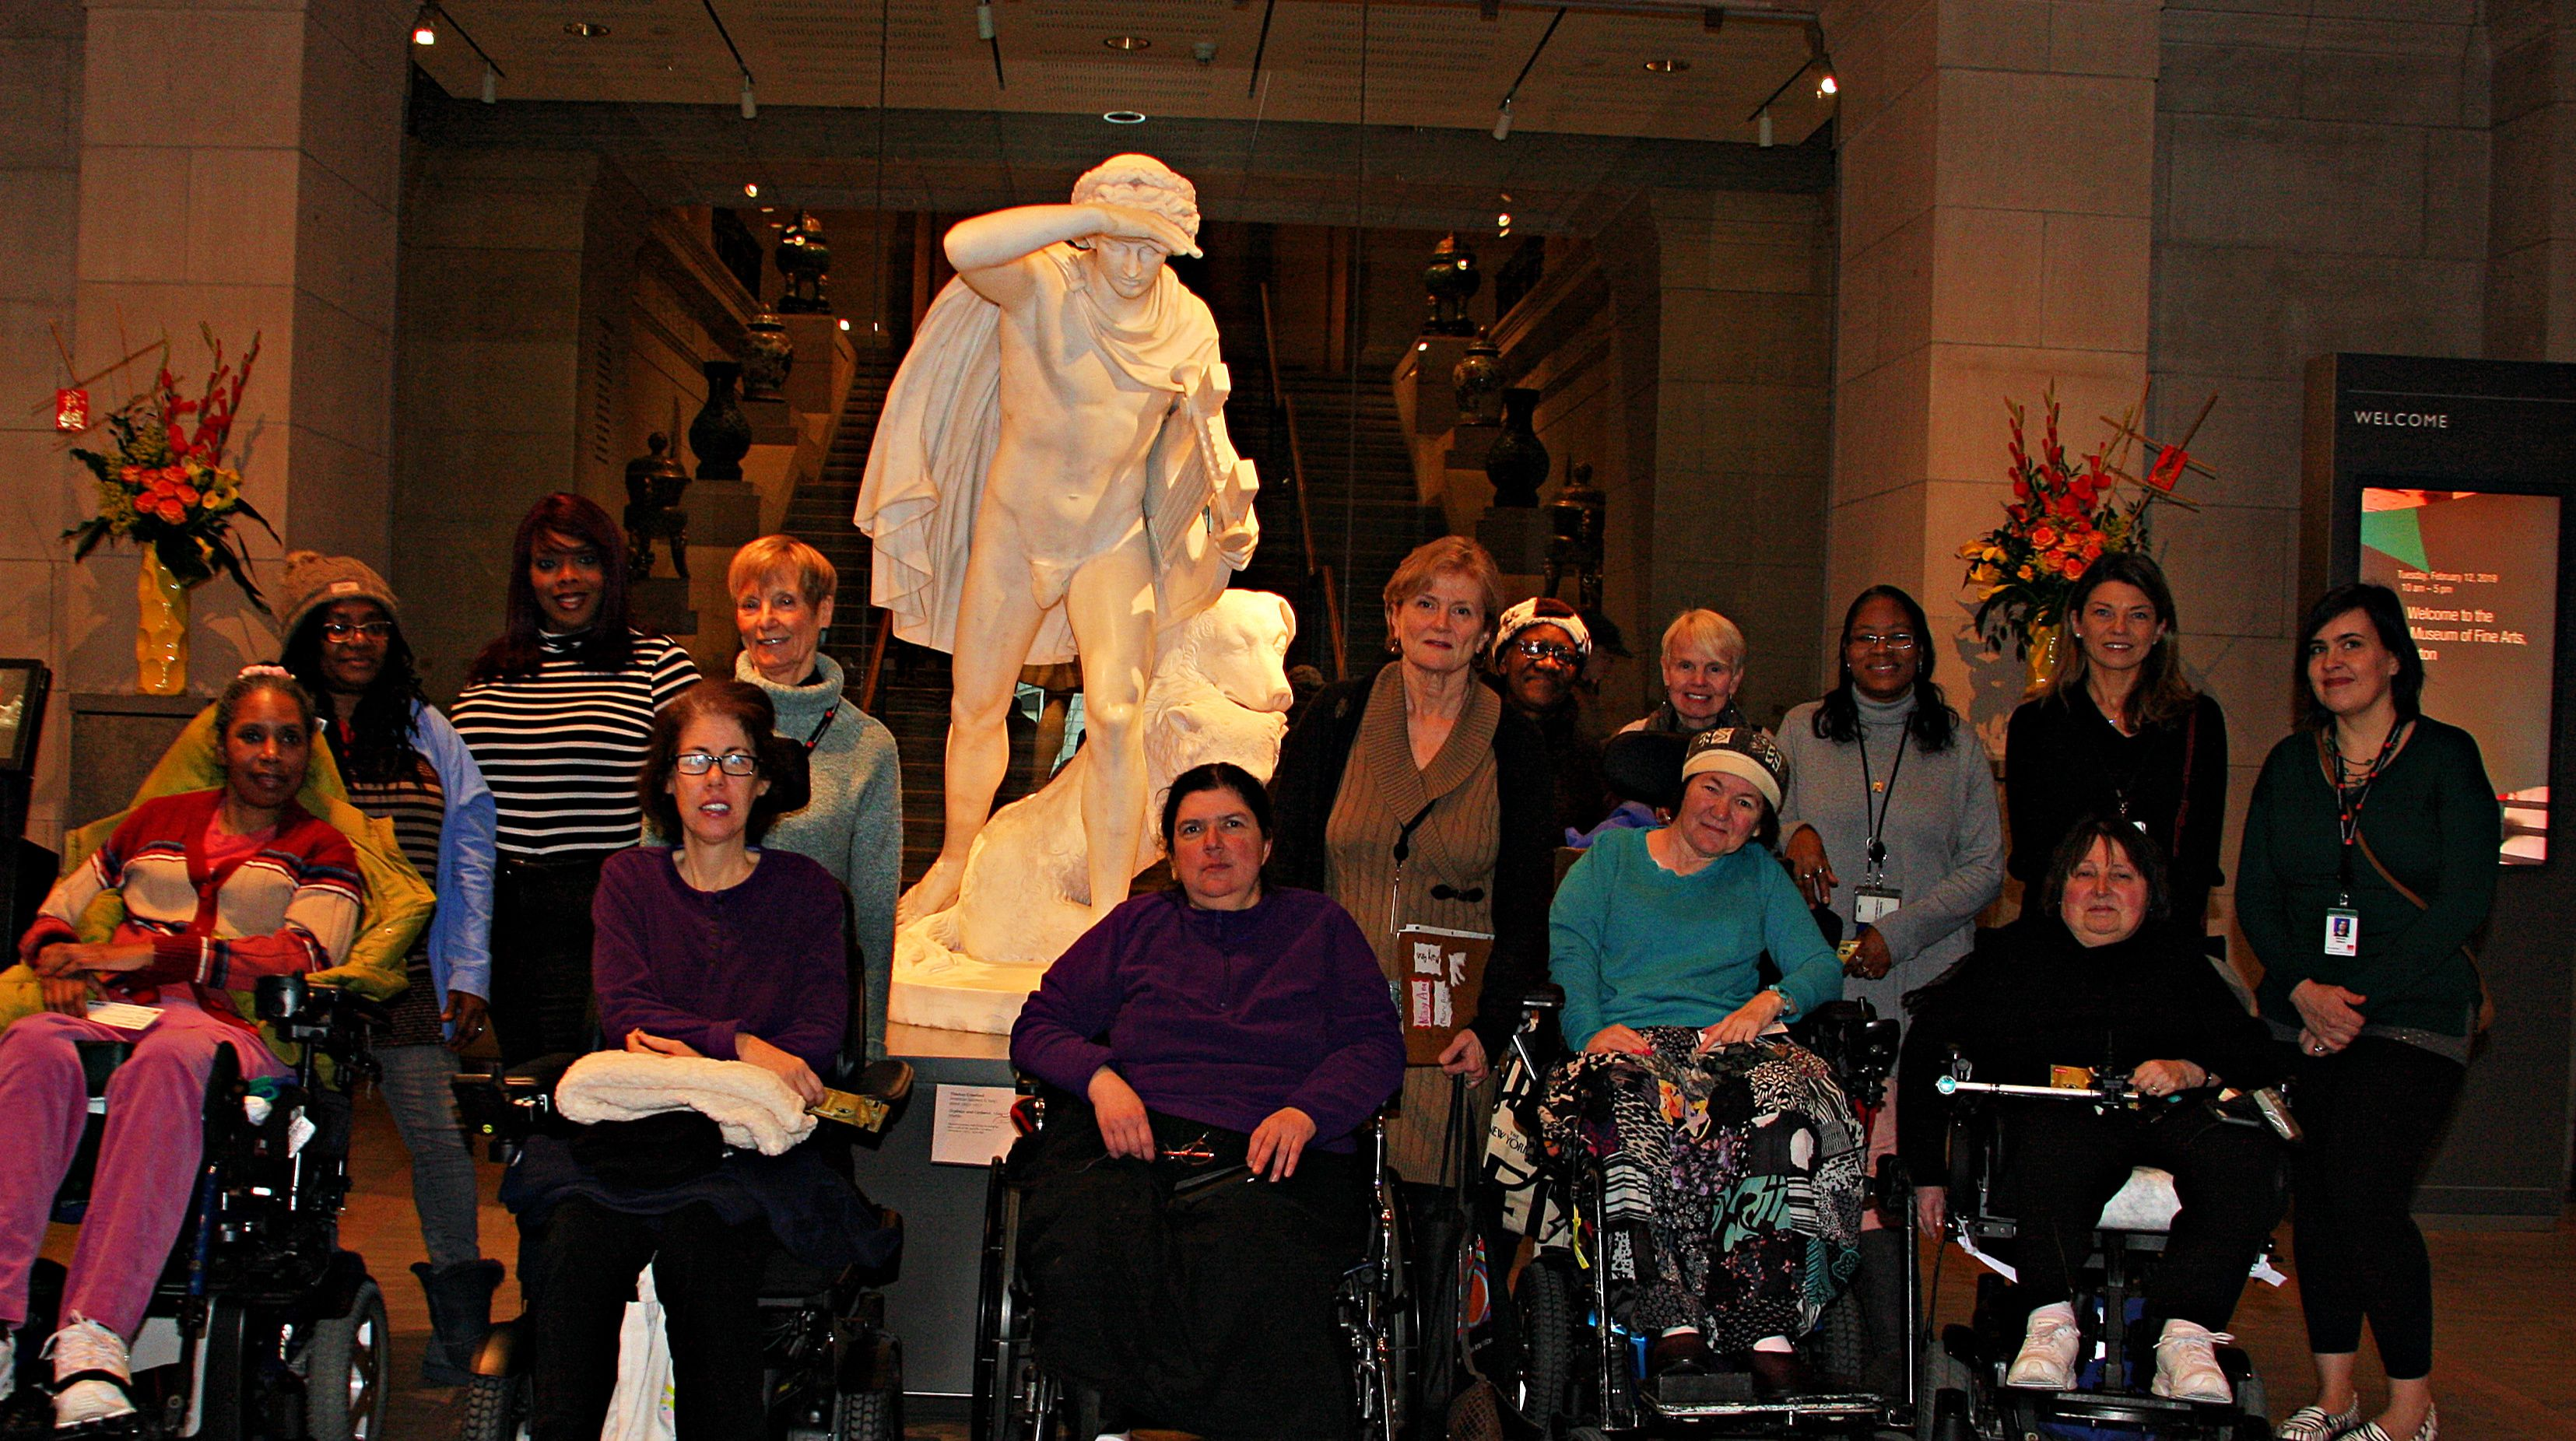 B'Fit Members Visited Museum of Fine Arts - Ansel Adams Exhibit